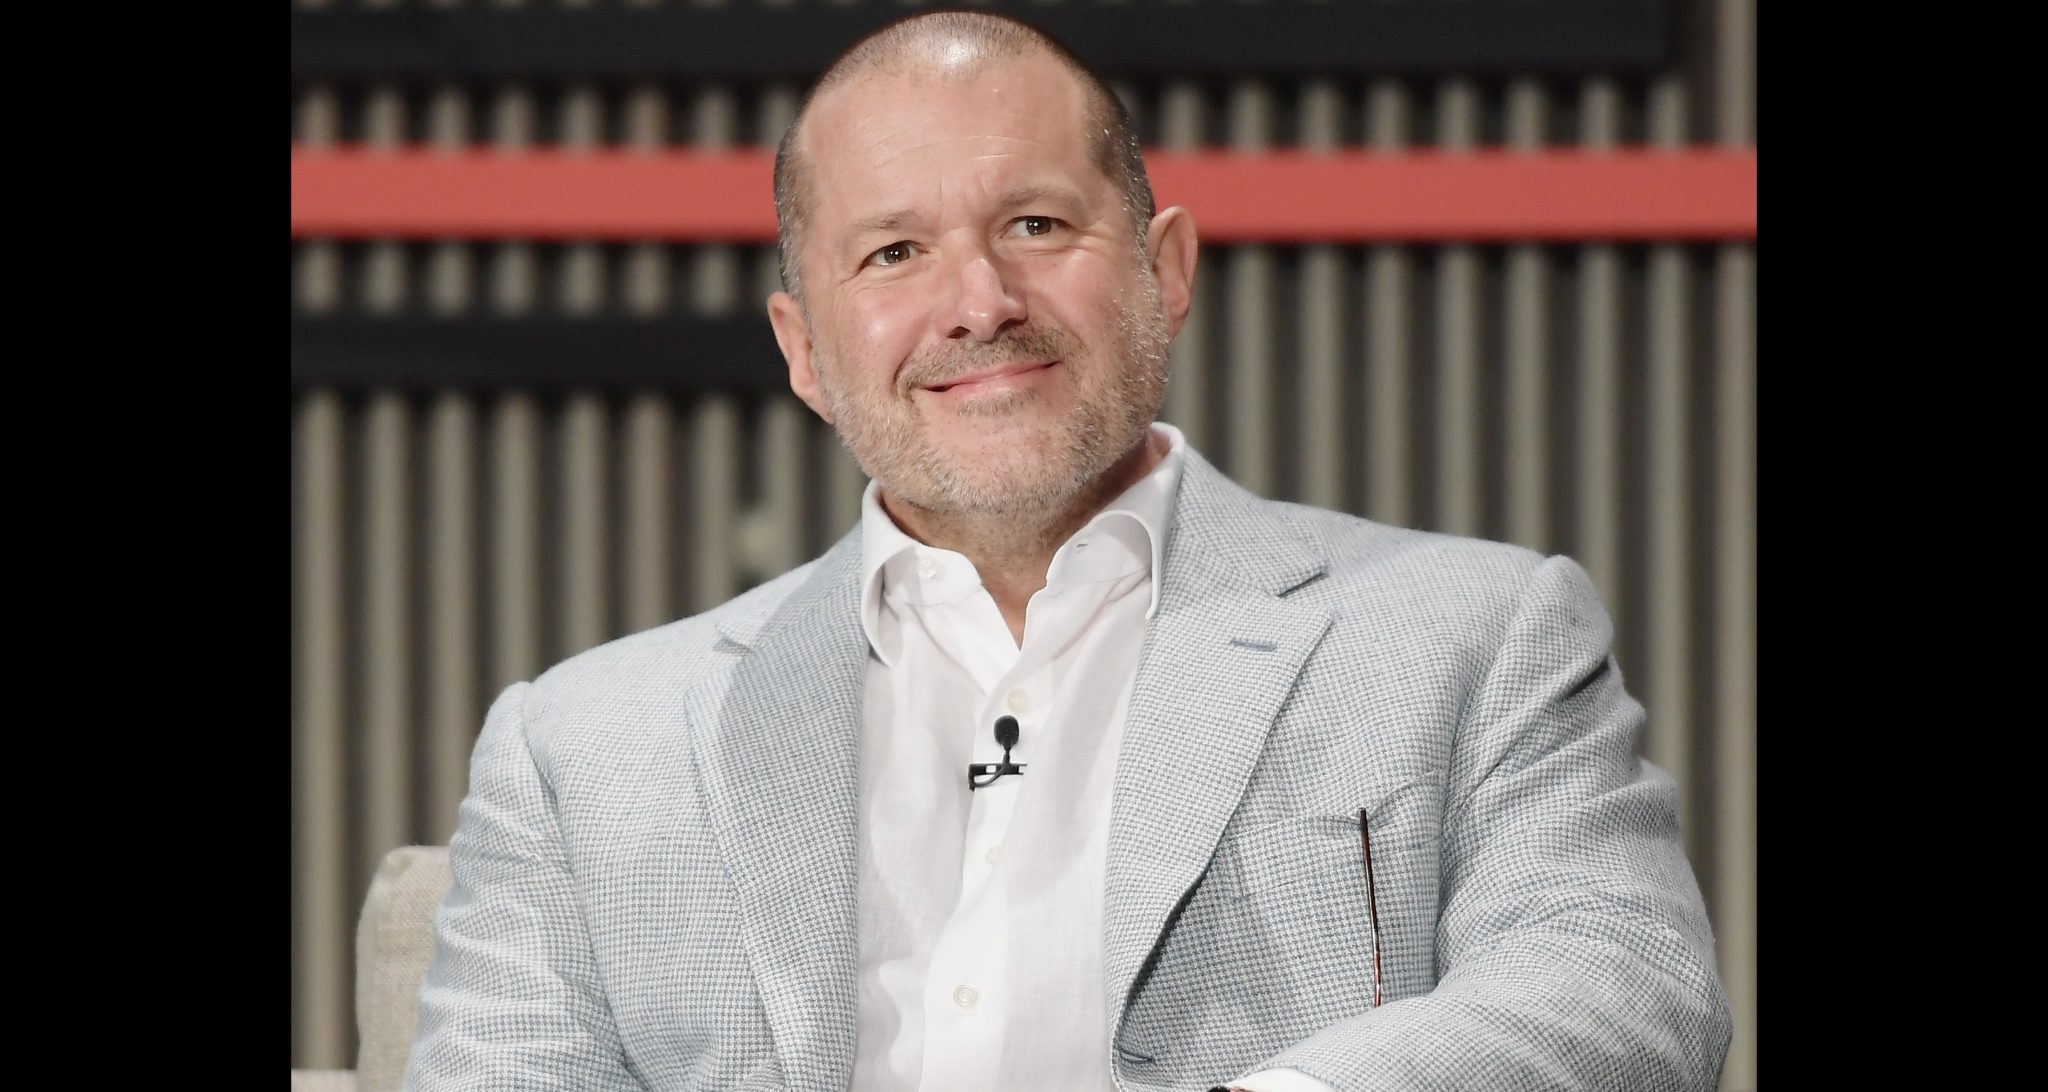 Jony Ive Net Worth, Leaves Apple to Start His Own Firm, LoveFrom, Facts To Know